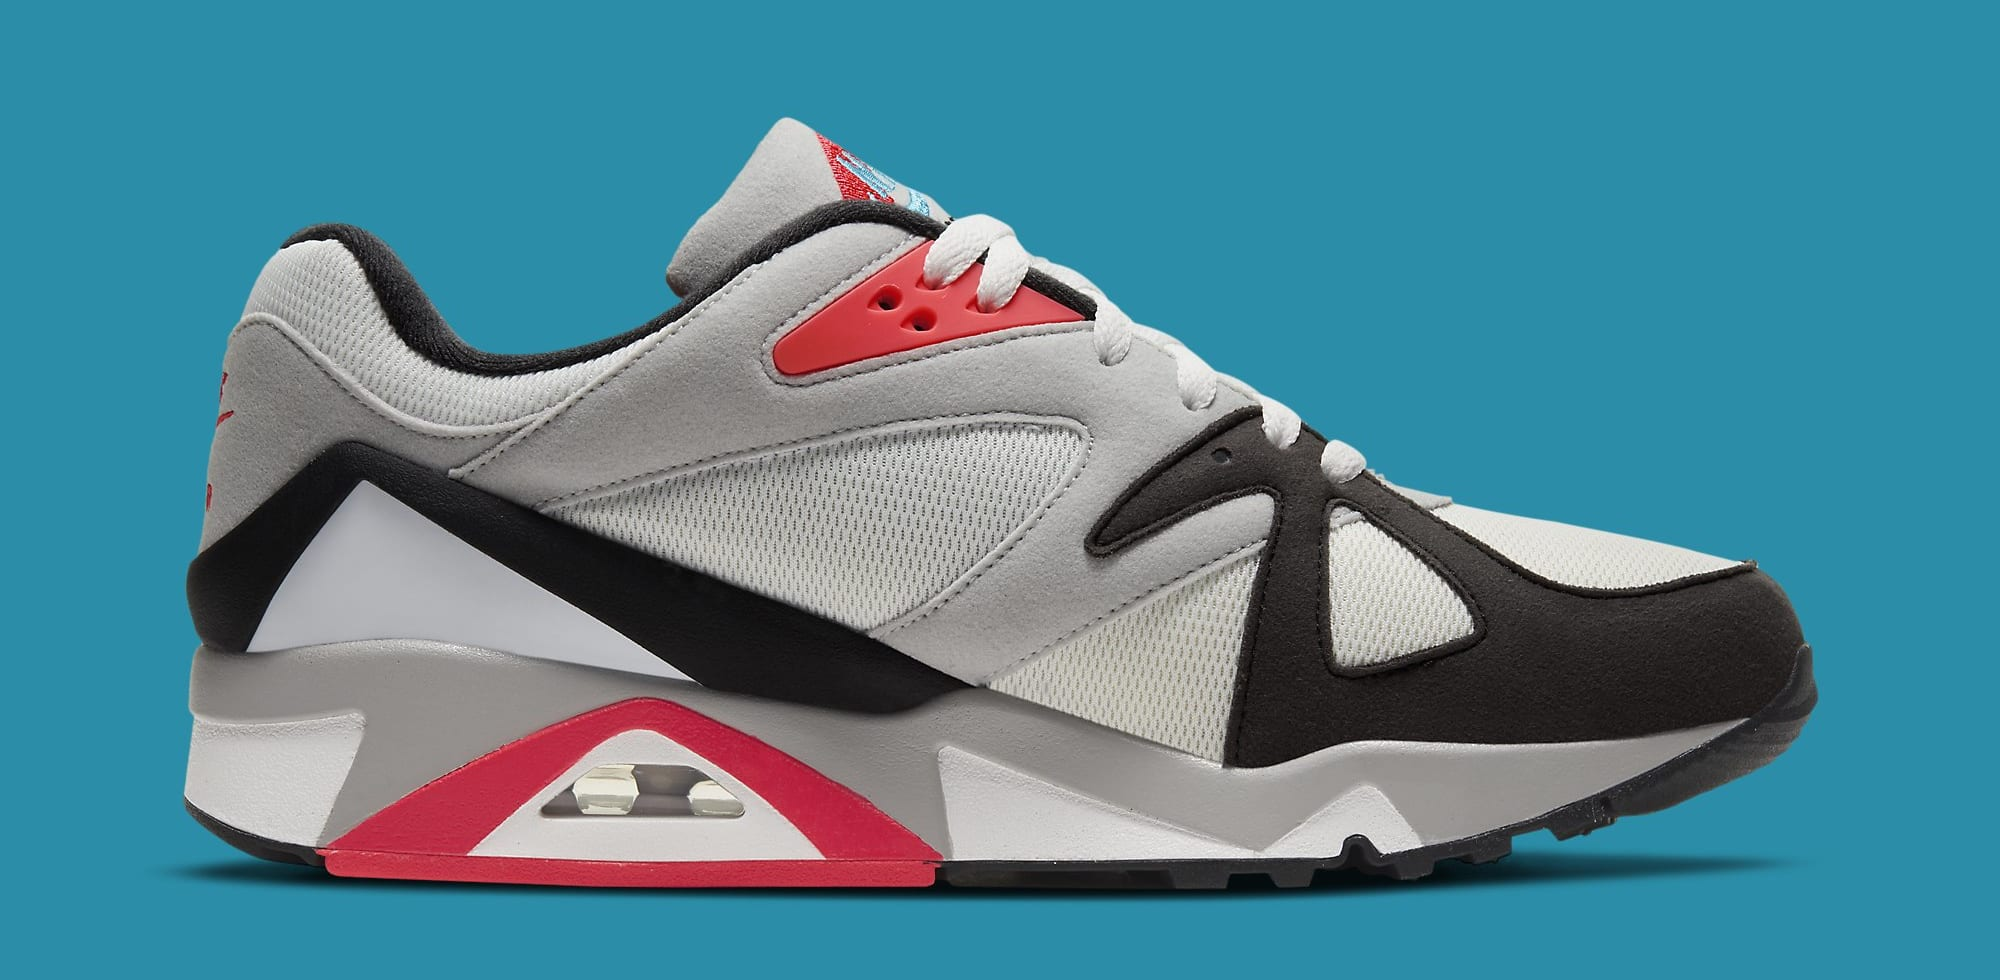 Nike Air Structure Triax 91 'Neo Teal/Infrared' CV3492-100 Medial